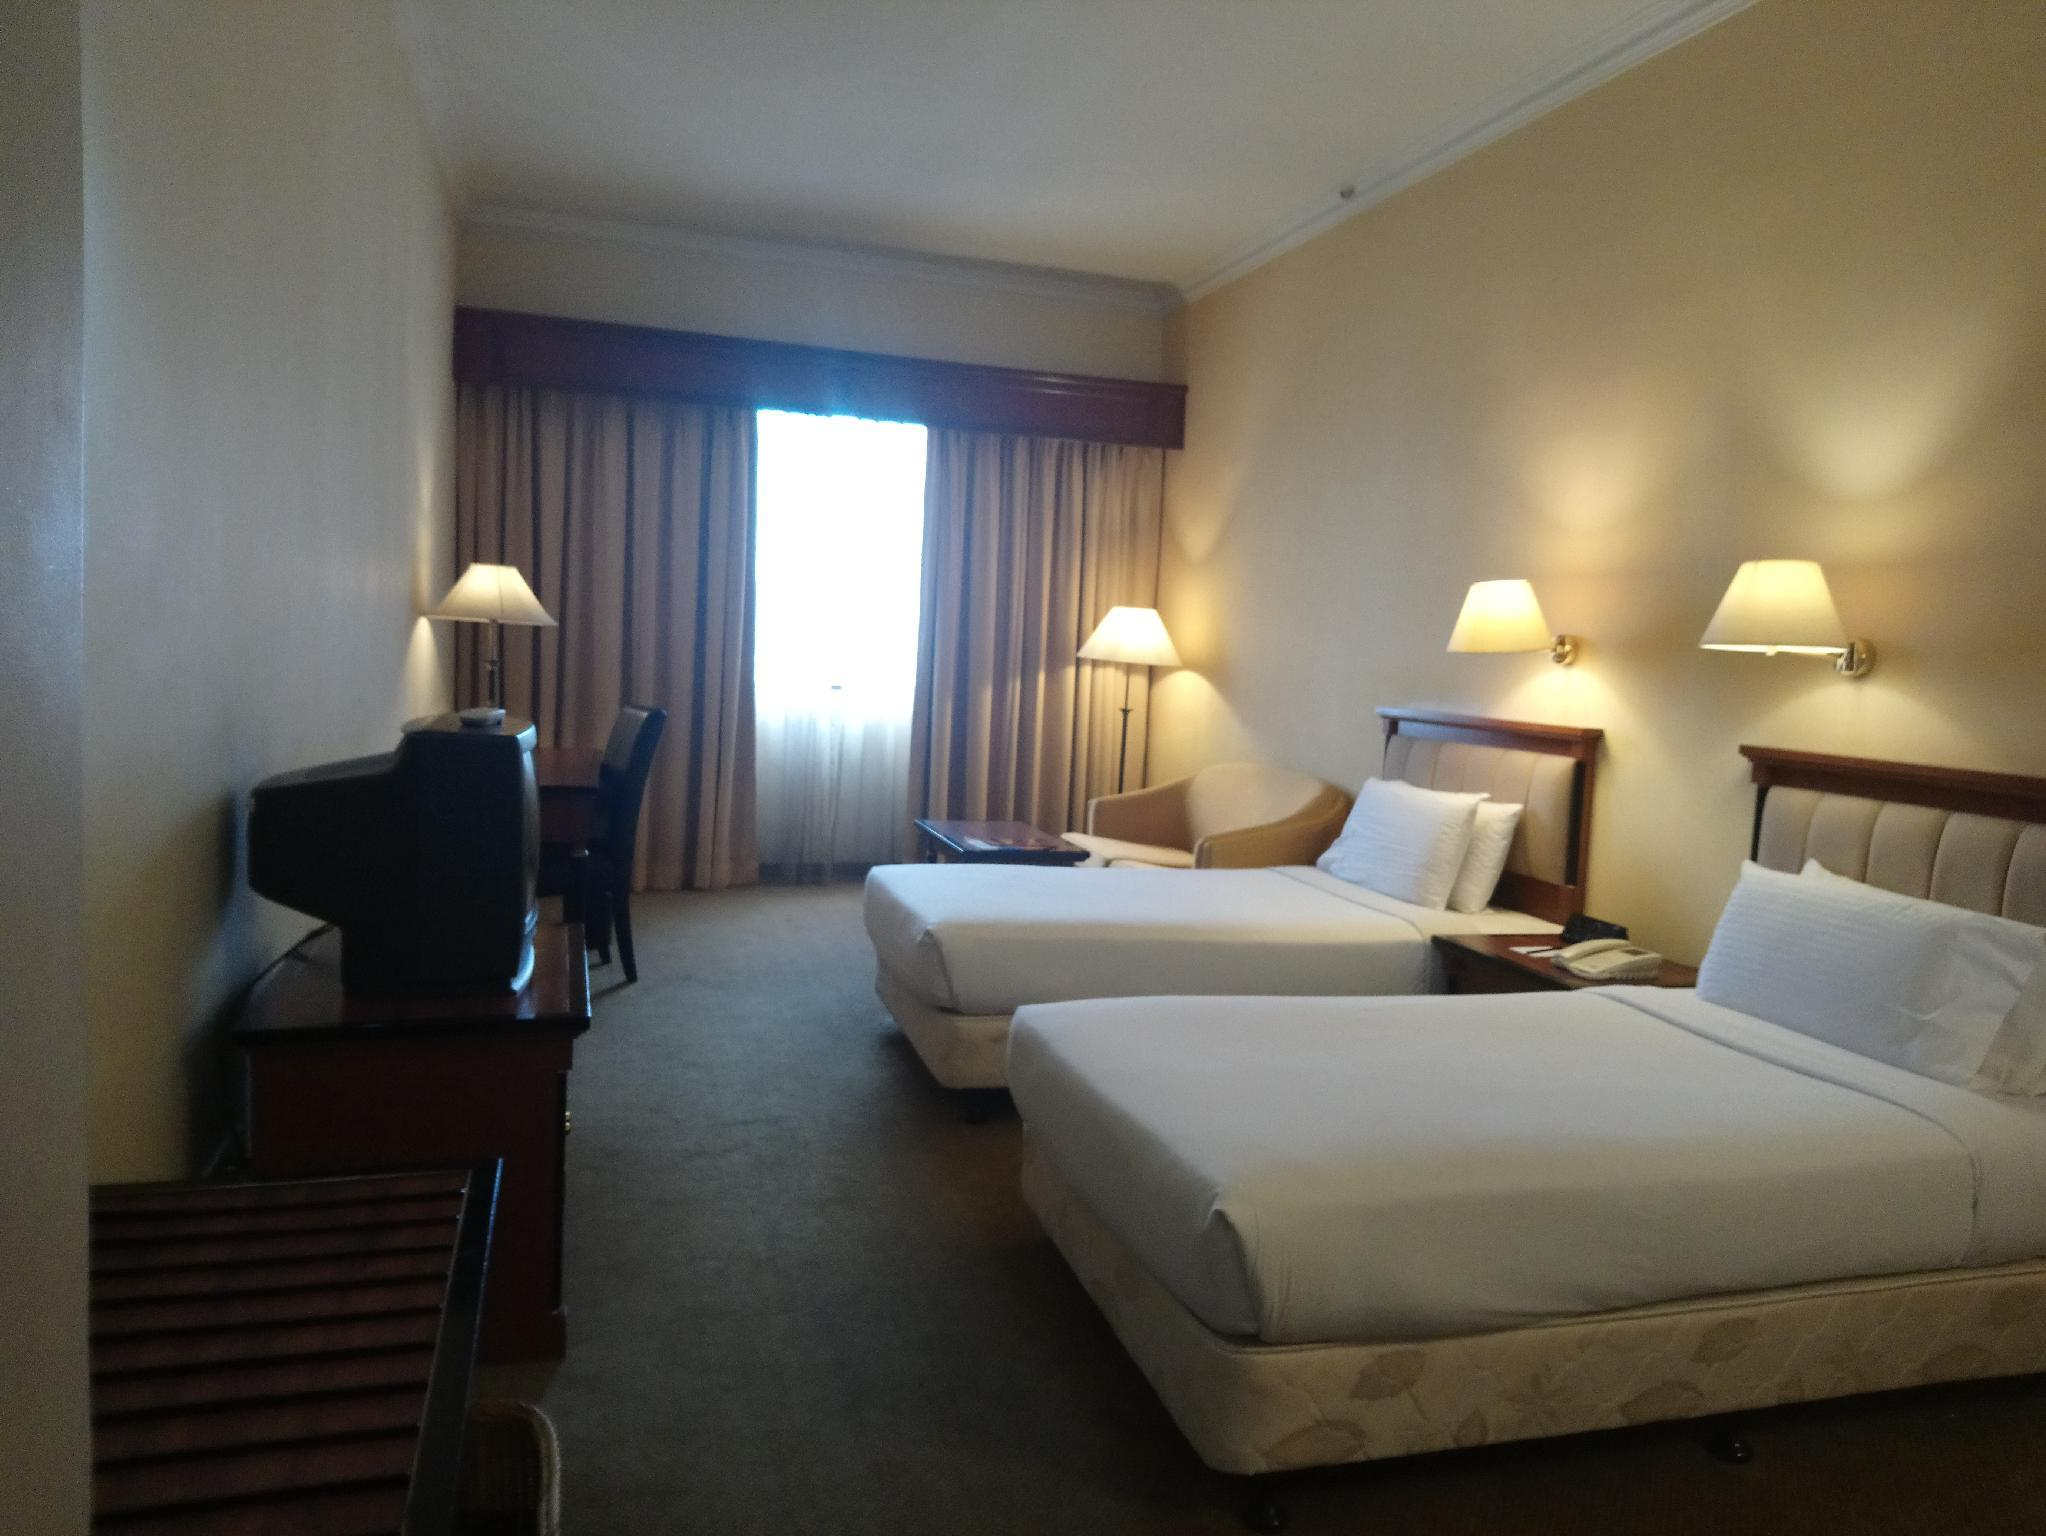 Lantai Executive - Kamar Deluxe dengan Sarapan (Executive Floor - Deluxe Room With Breakfast)